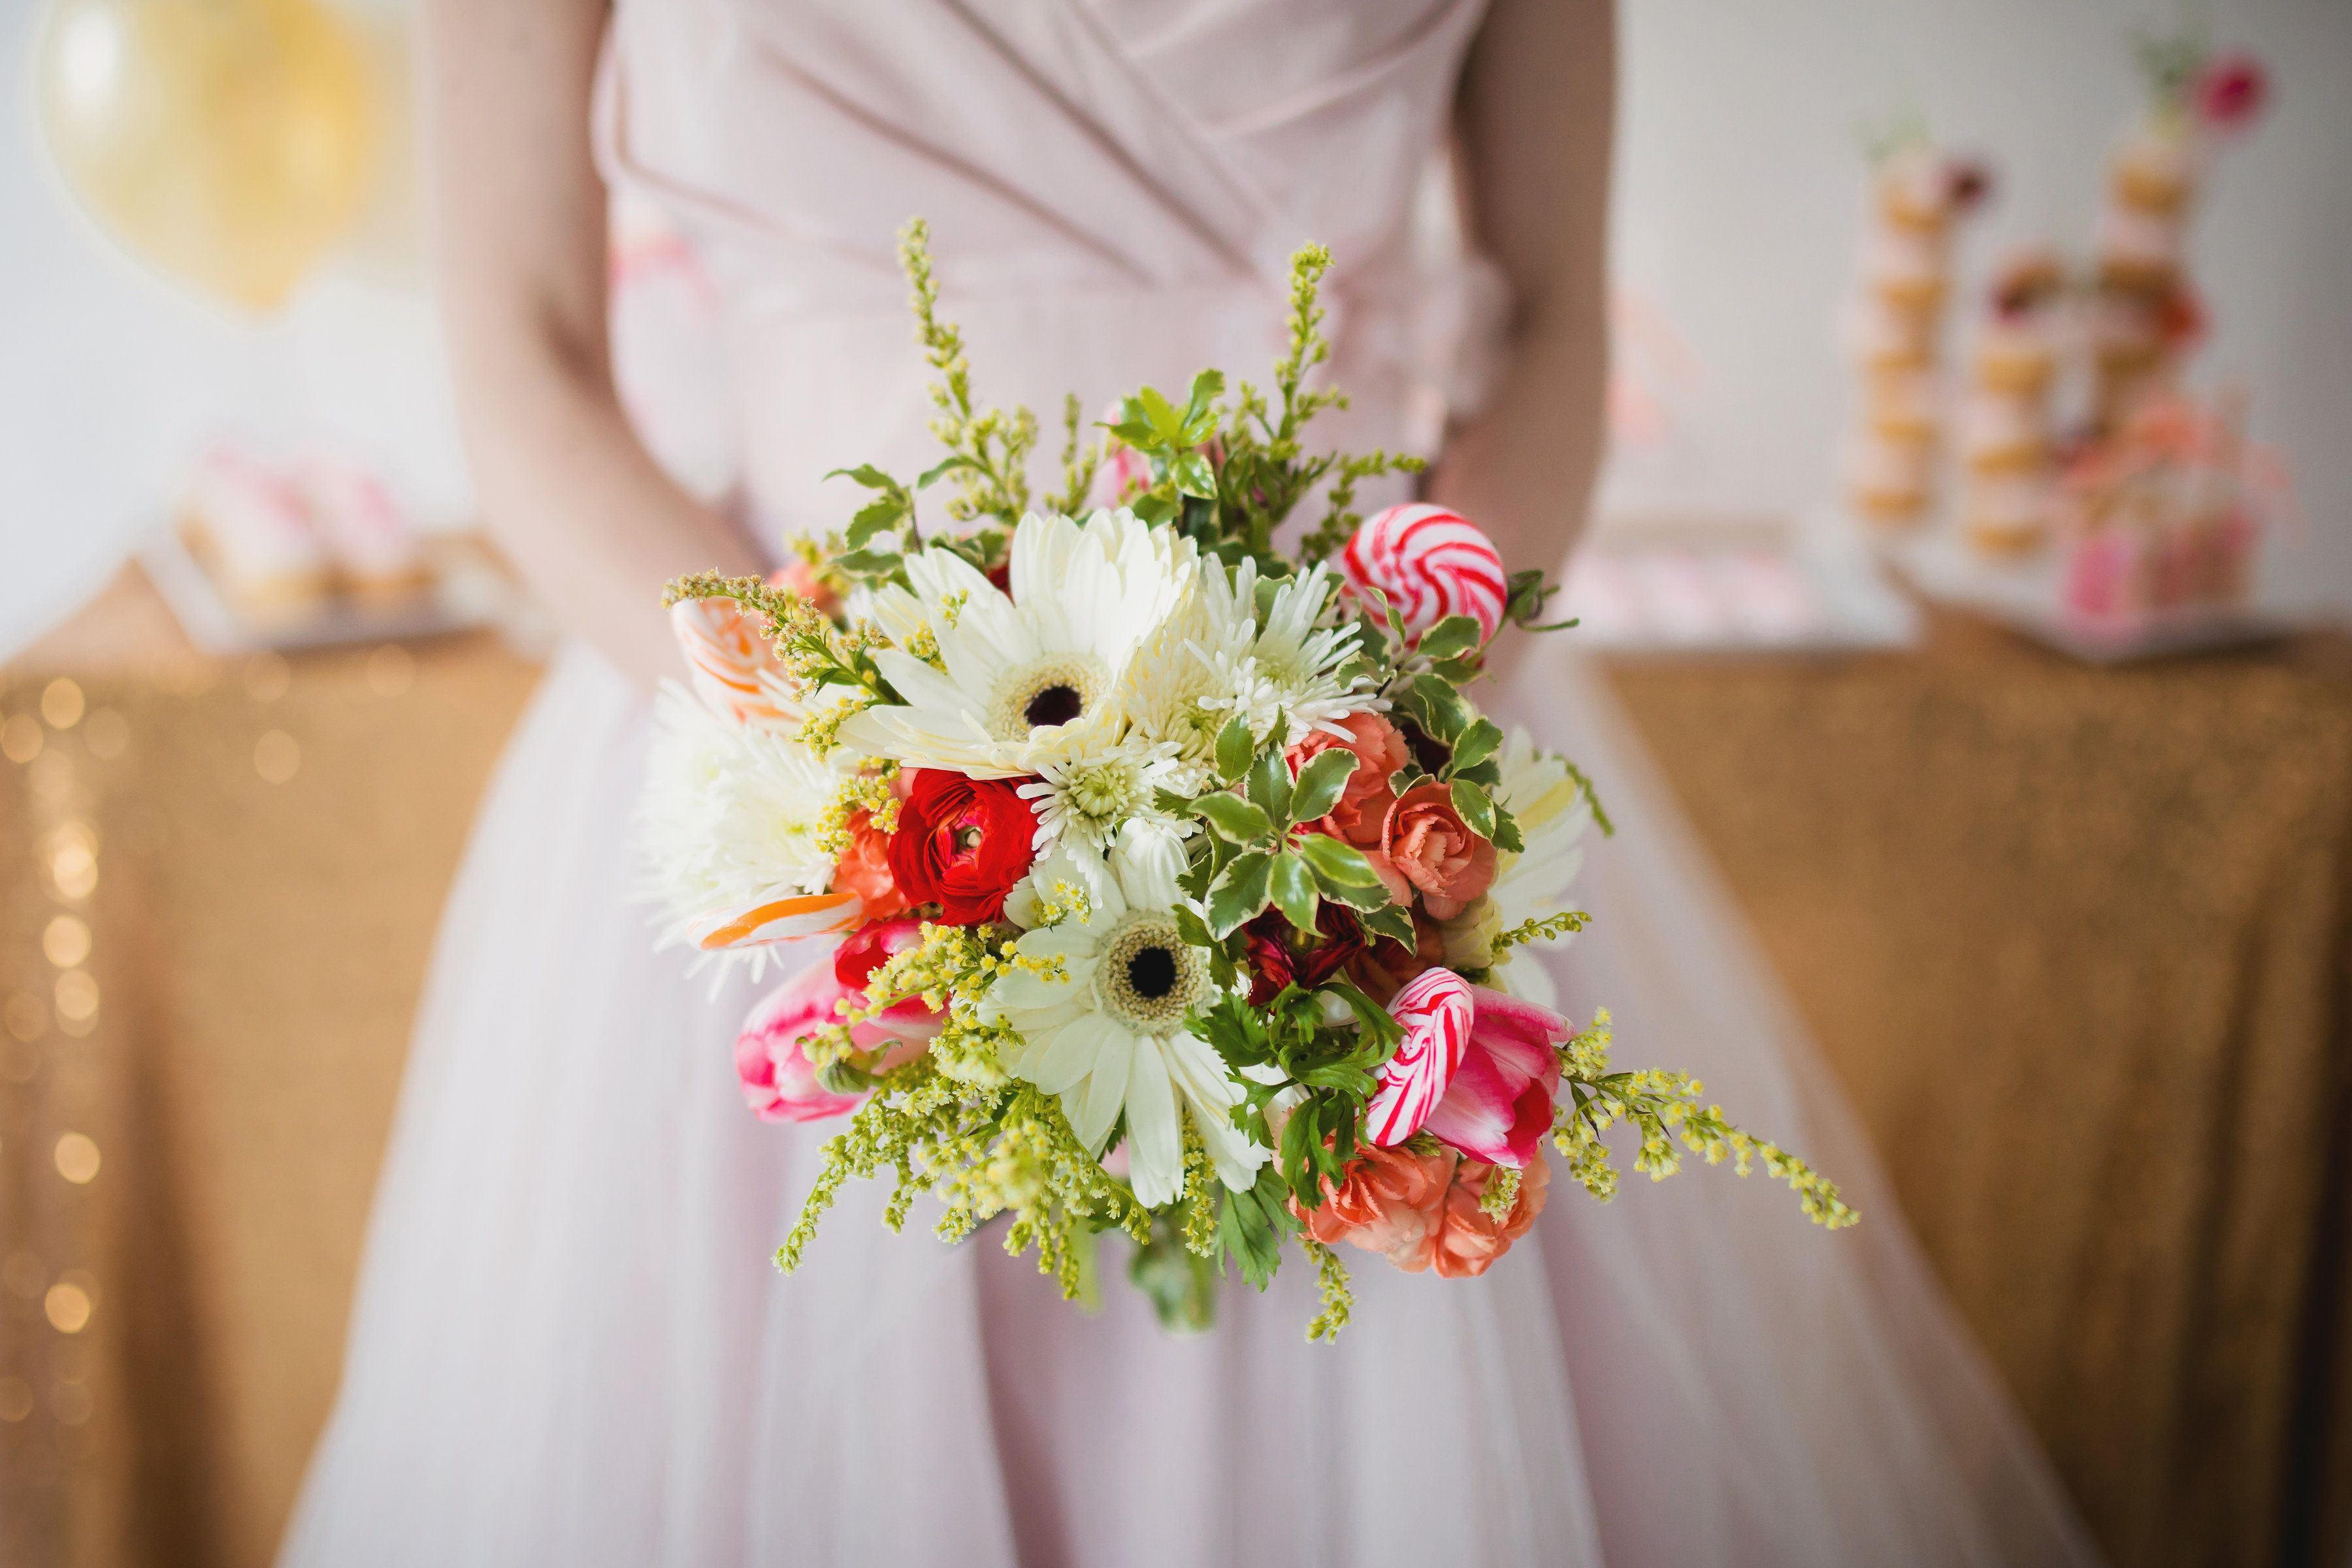 Bridal bouquet made with gerber daisies mini carnations